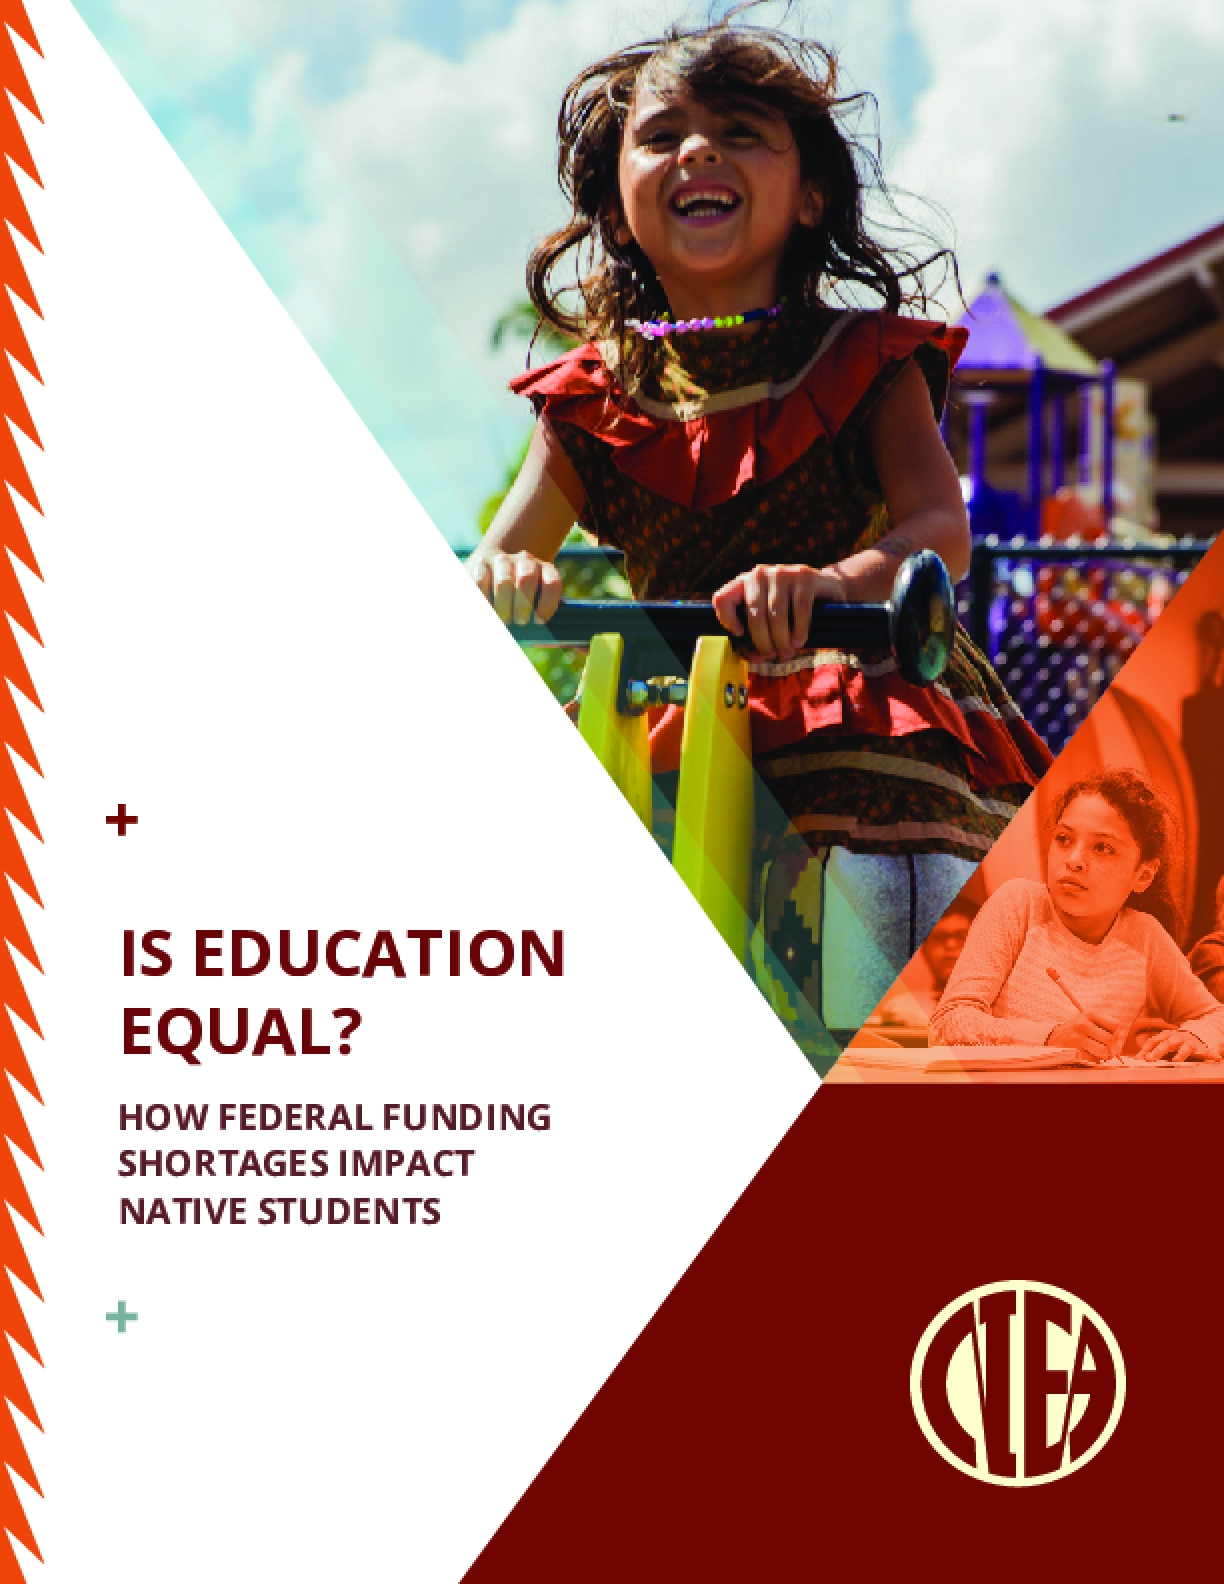 Is Education Equal? How Federal Funding Shortages Impact Native Students